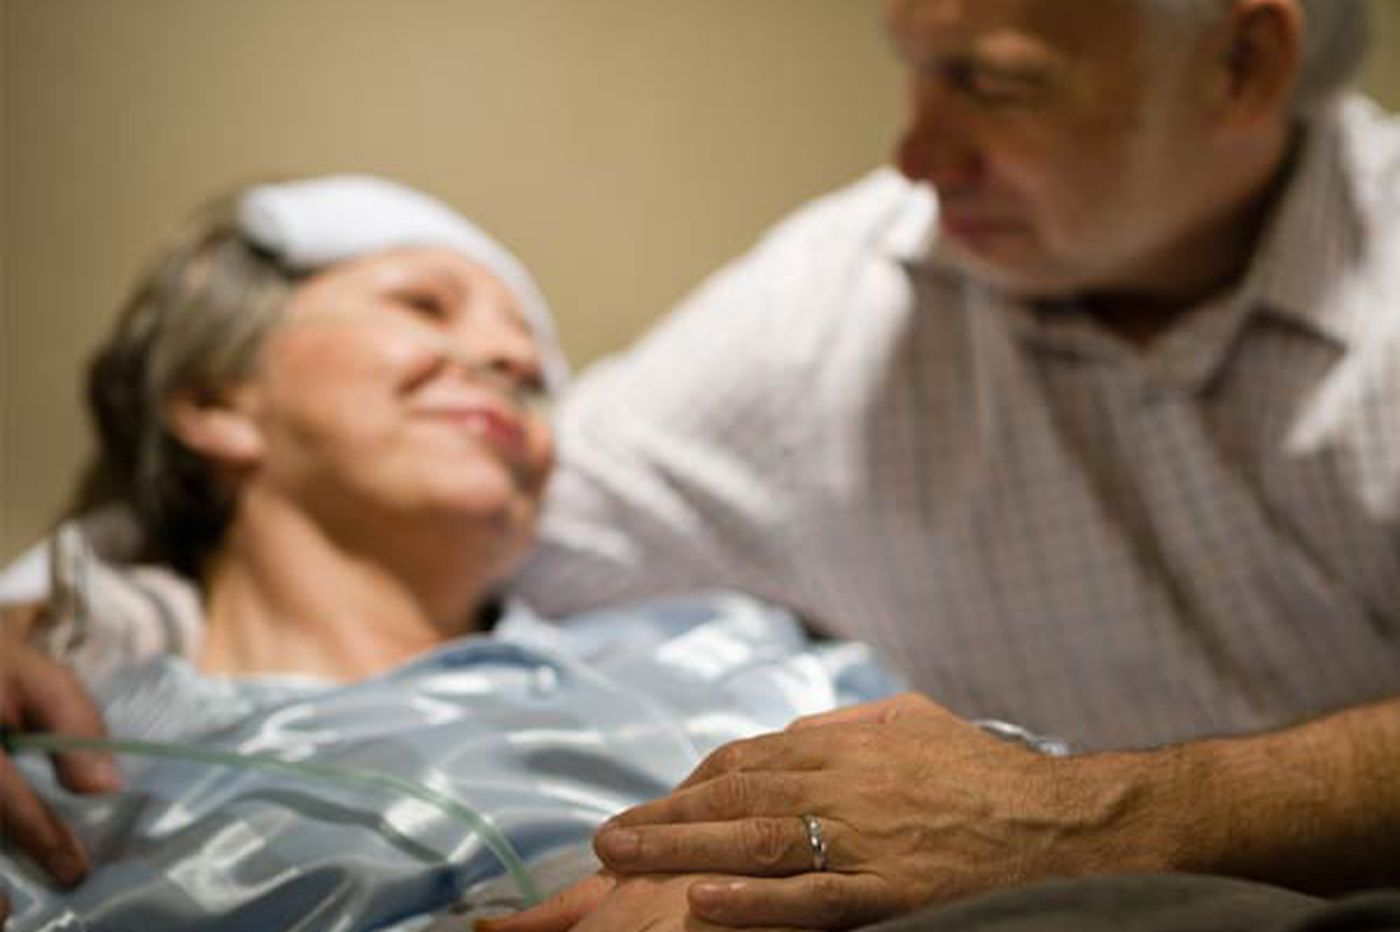 Dying wife wants to relocate, but he won't